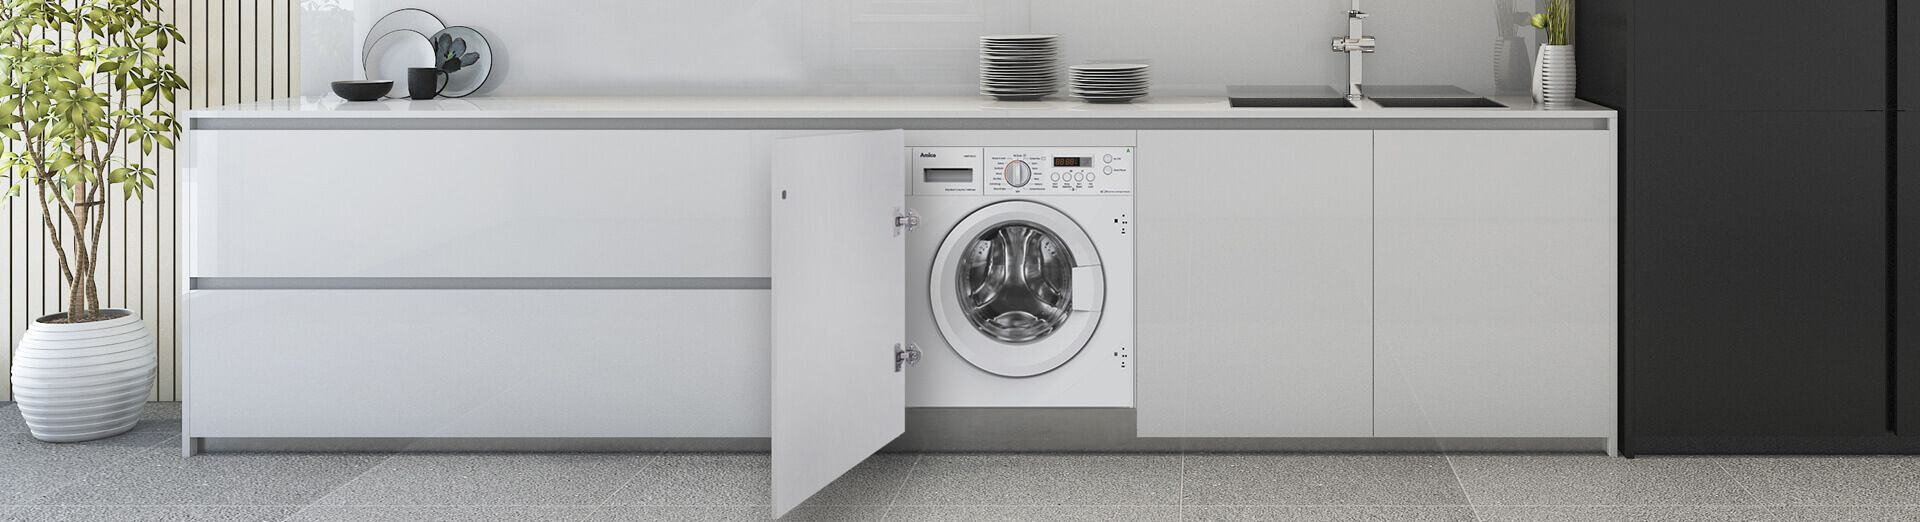 integrated washer dryers top image